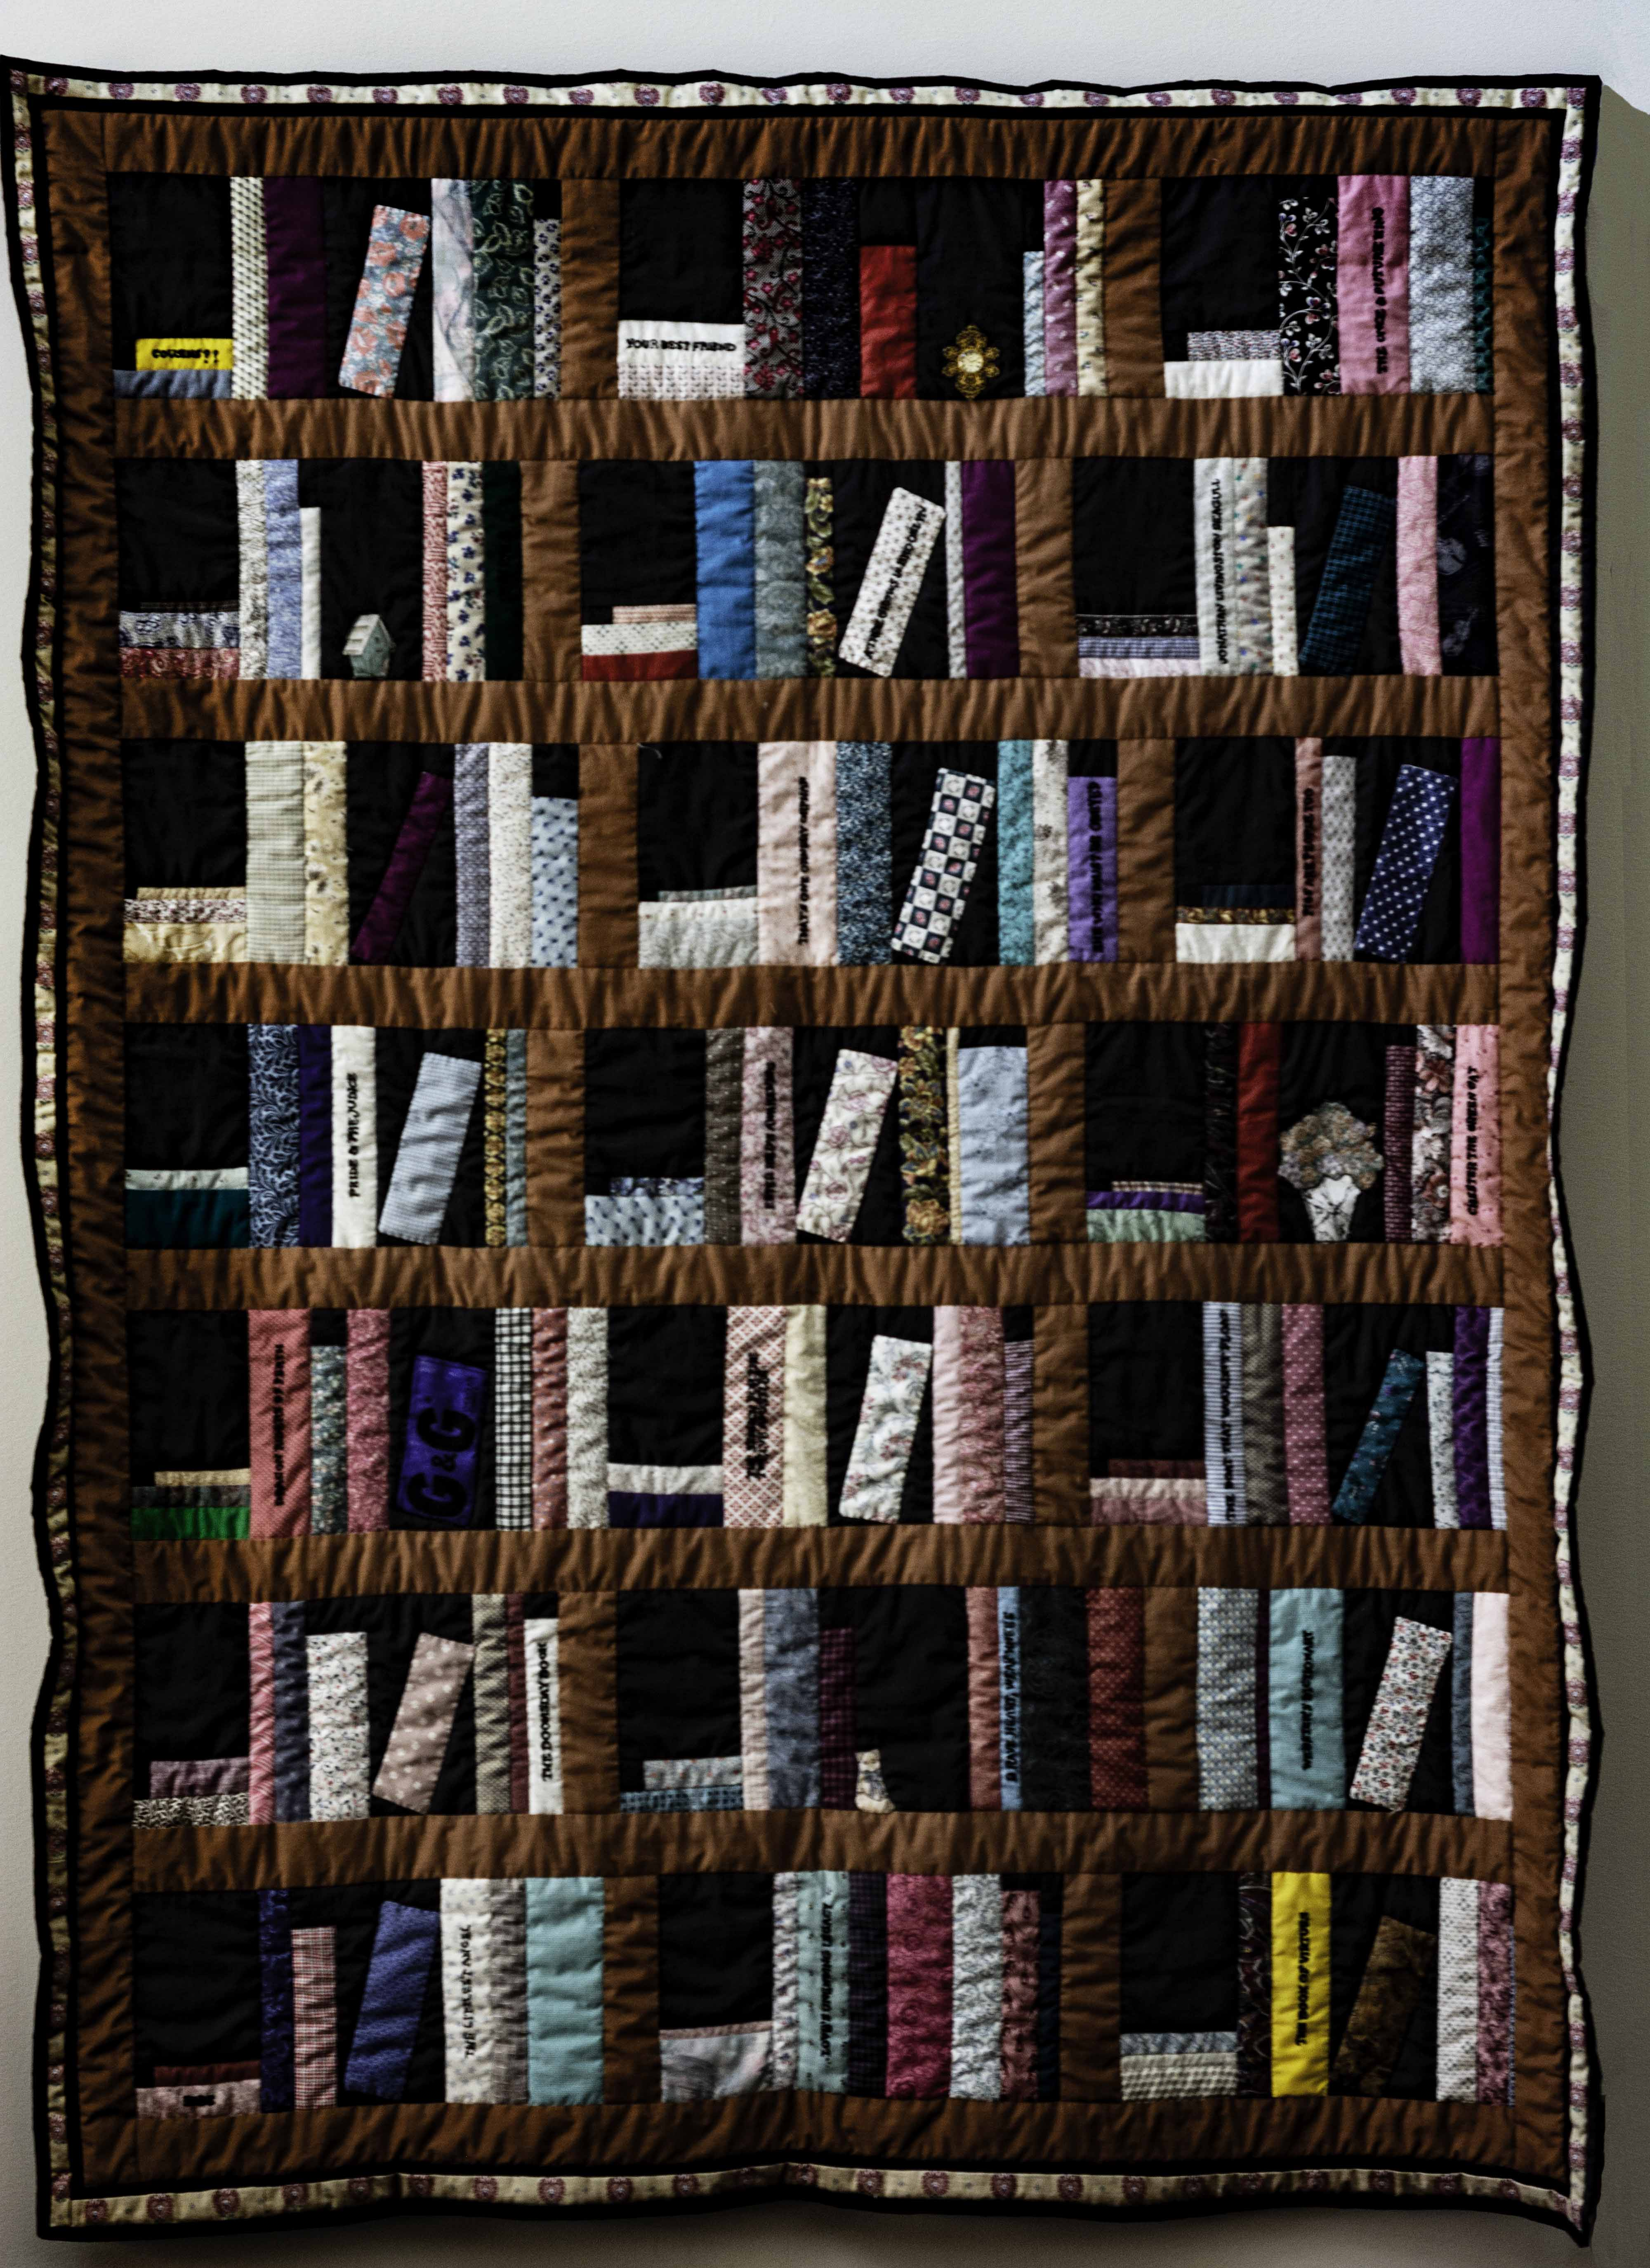 quilt depicting bookshelves with titles on spines